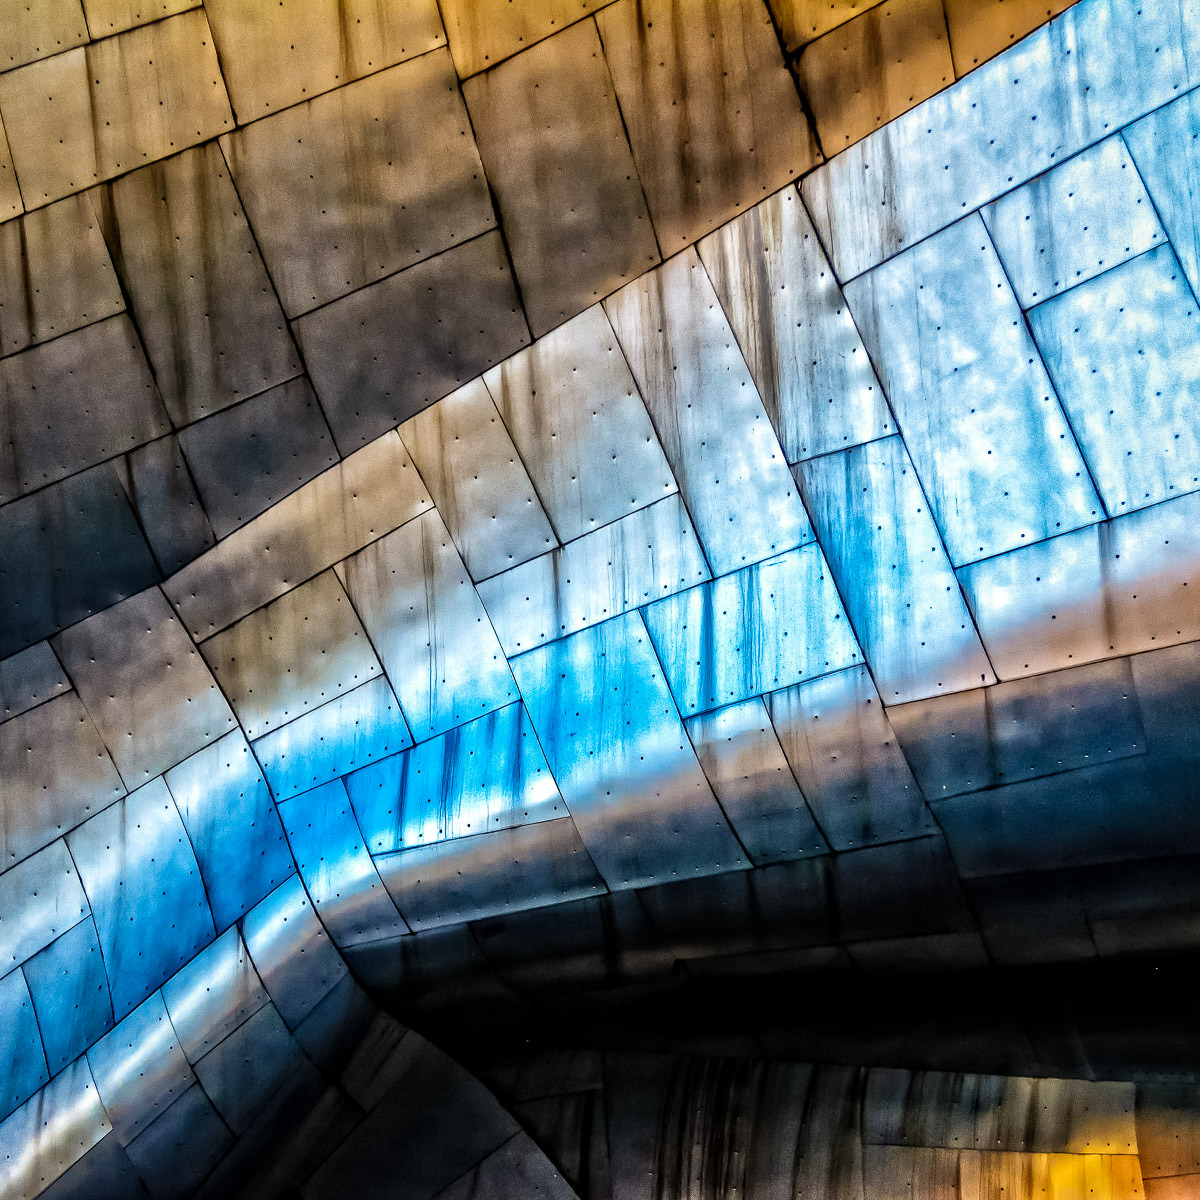 Architectural detail of architect Frank Gehry's Experience Music Project's stainless steel exterior in Seattle.